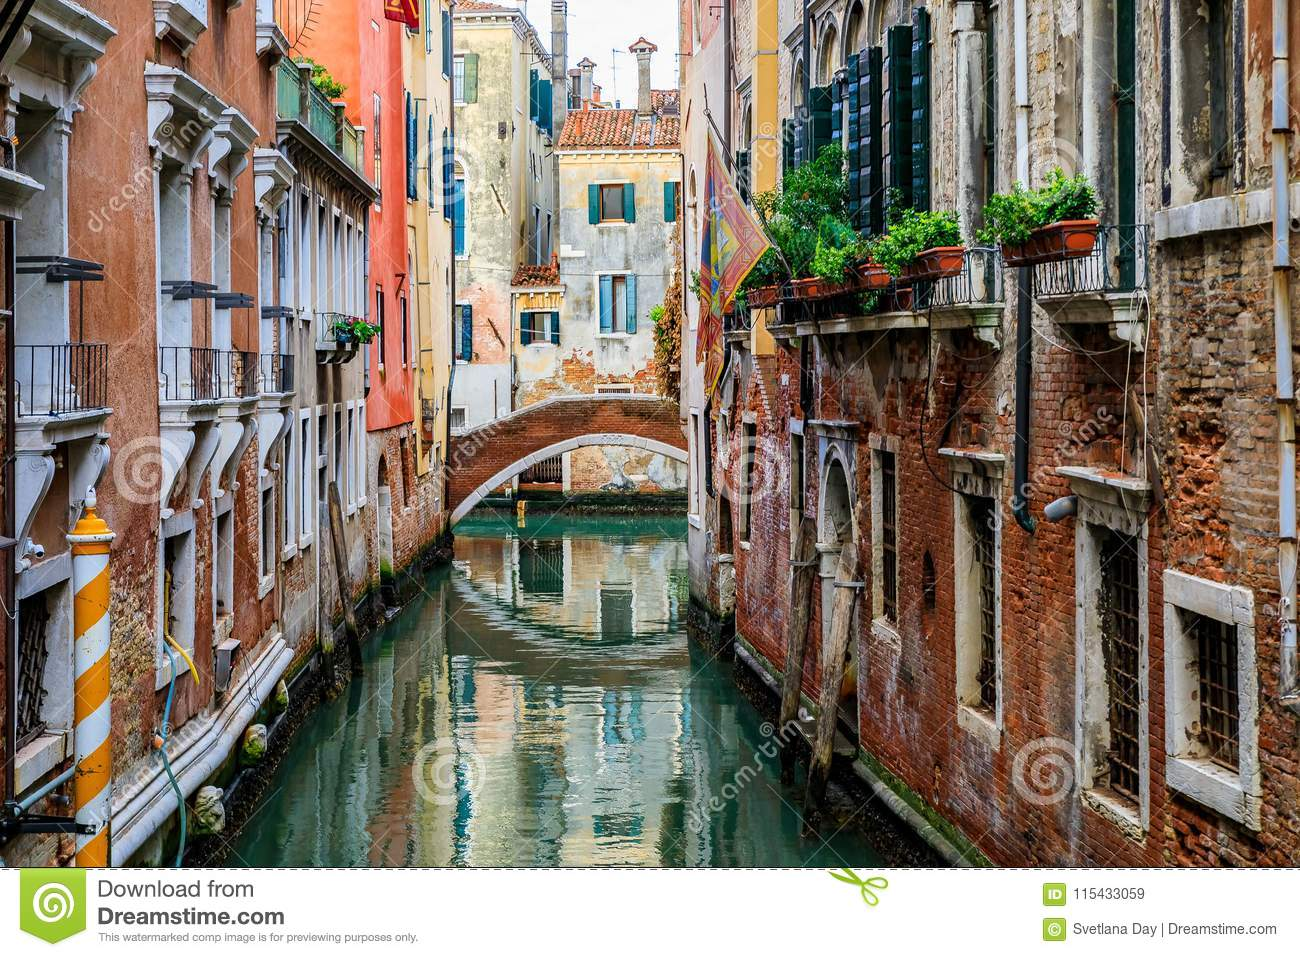 Weathered building facade on a picturesque canal in Venice Italy